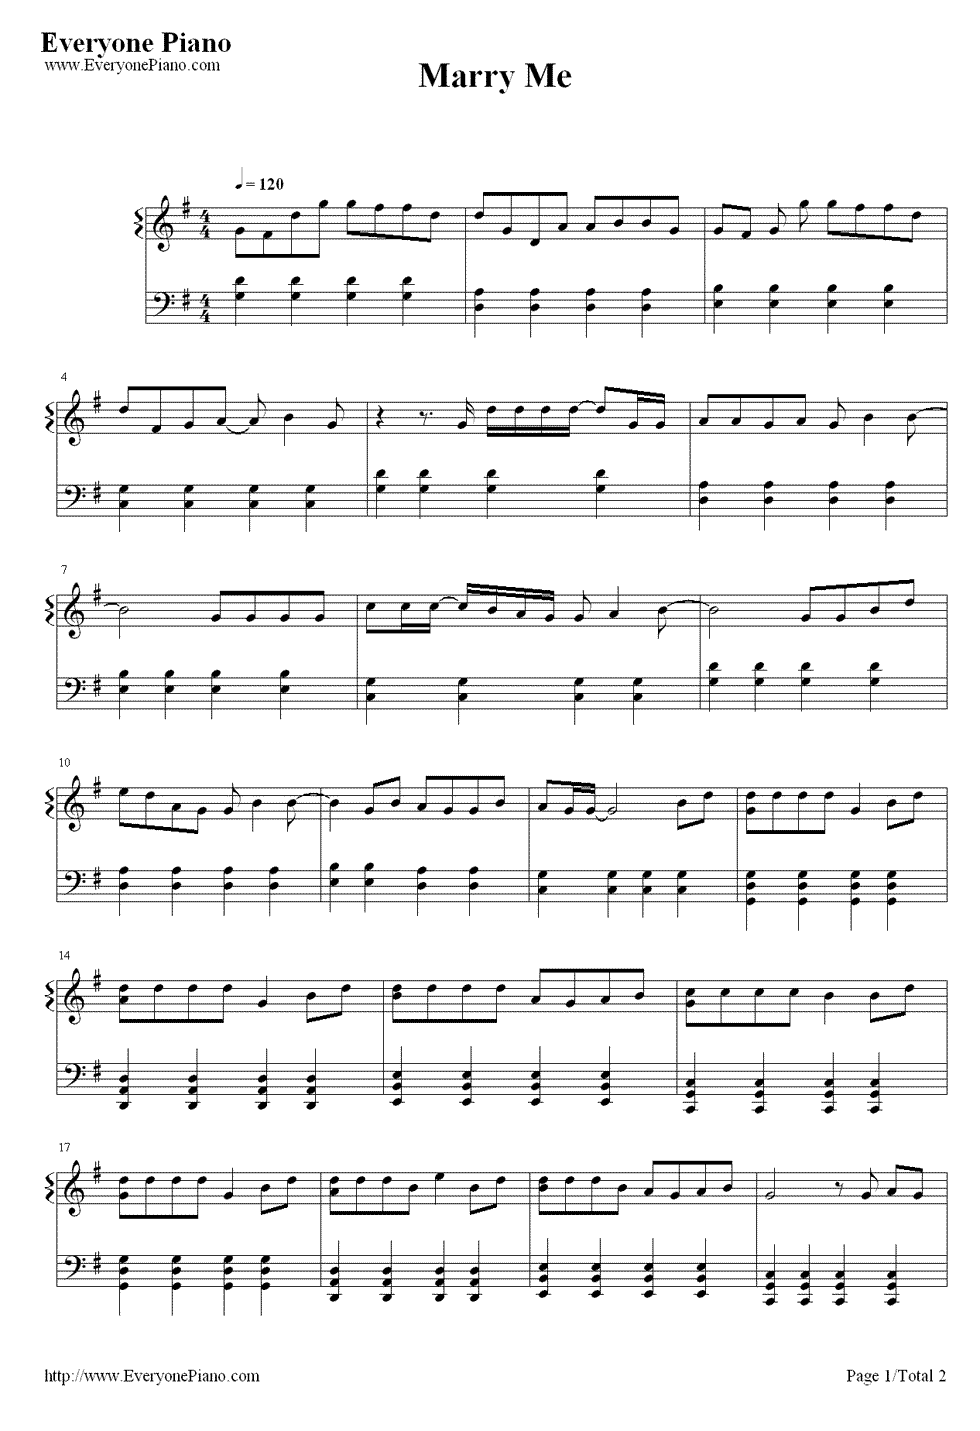 Marry me jason derulo stave preview 1 music scores pinterest free marry me piano sheet music is provided for you marry me is a song by american singer songwriter jason derulo released as the second single in the us hexwebz Image collections